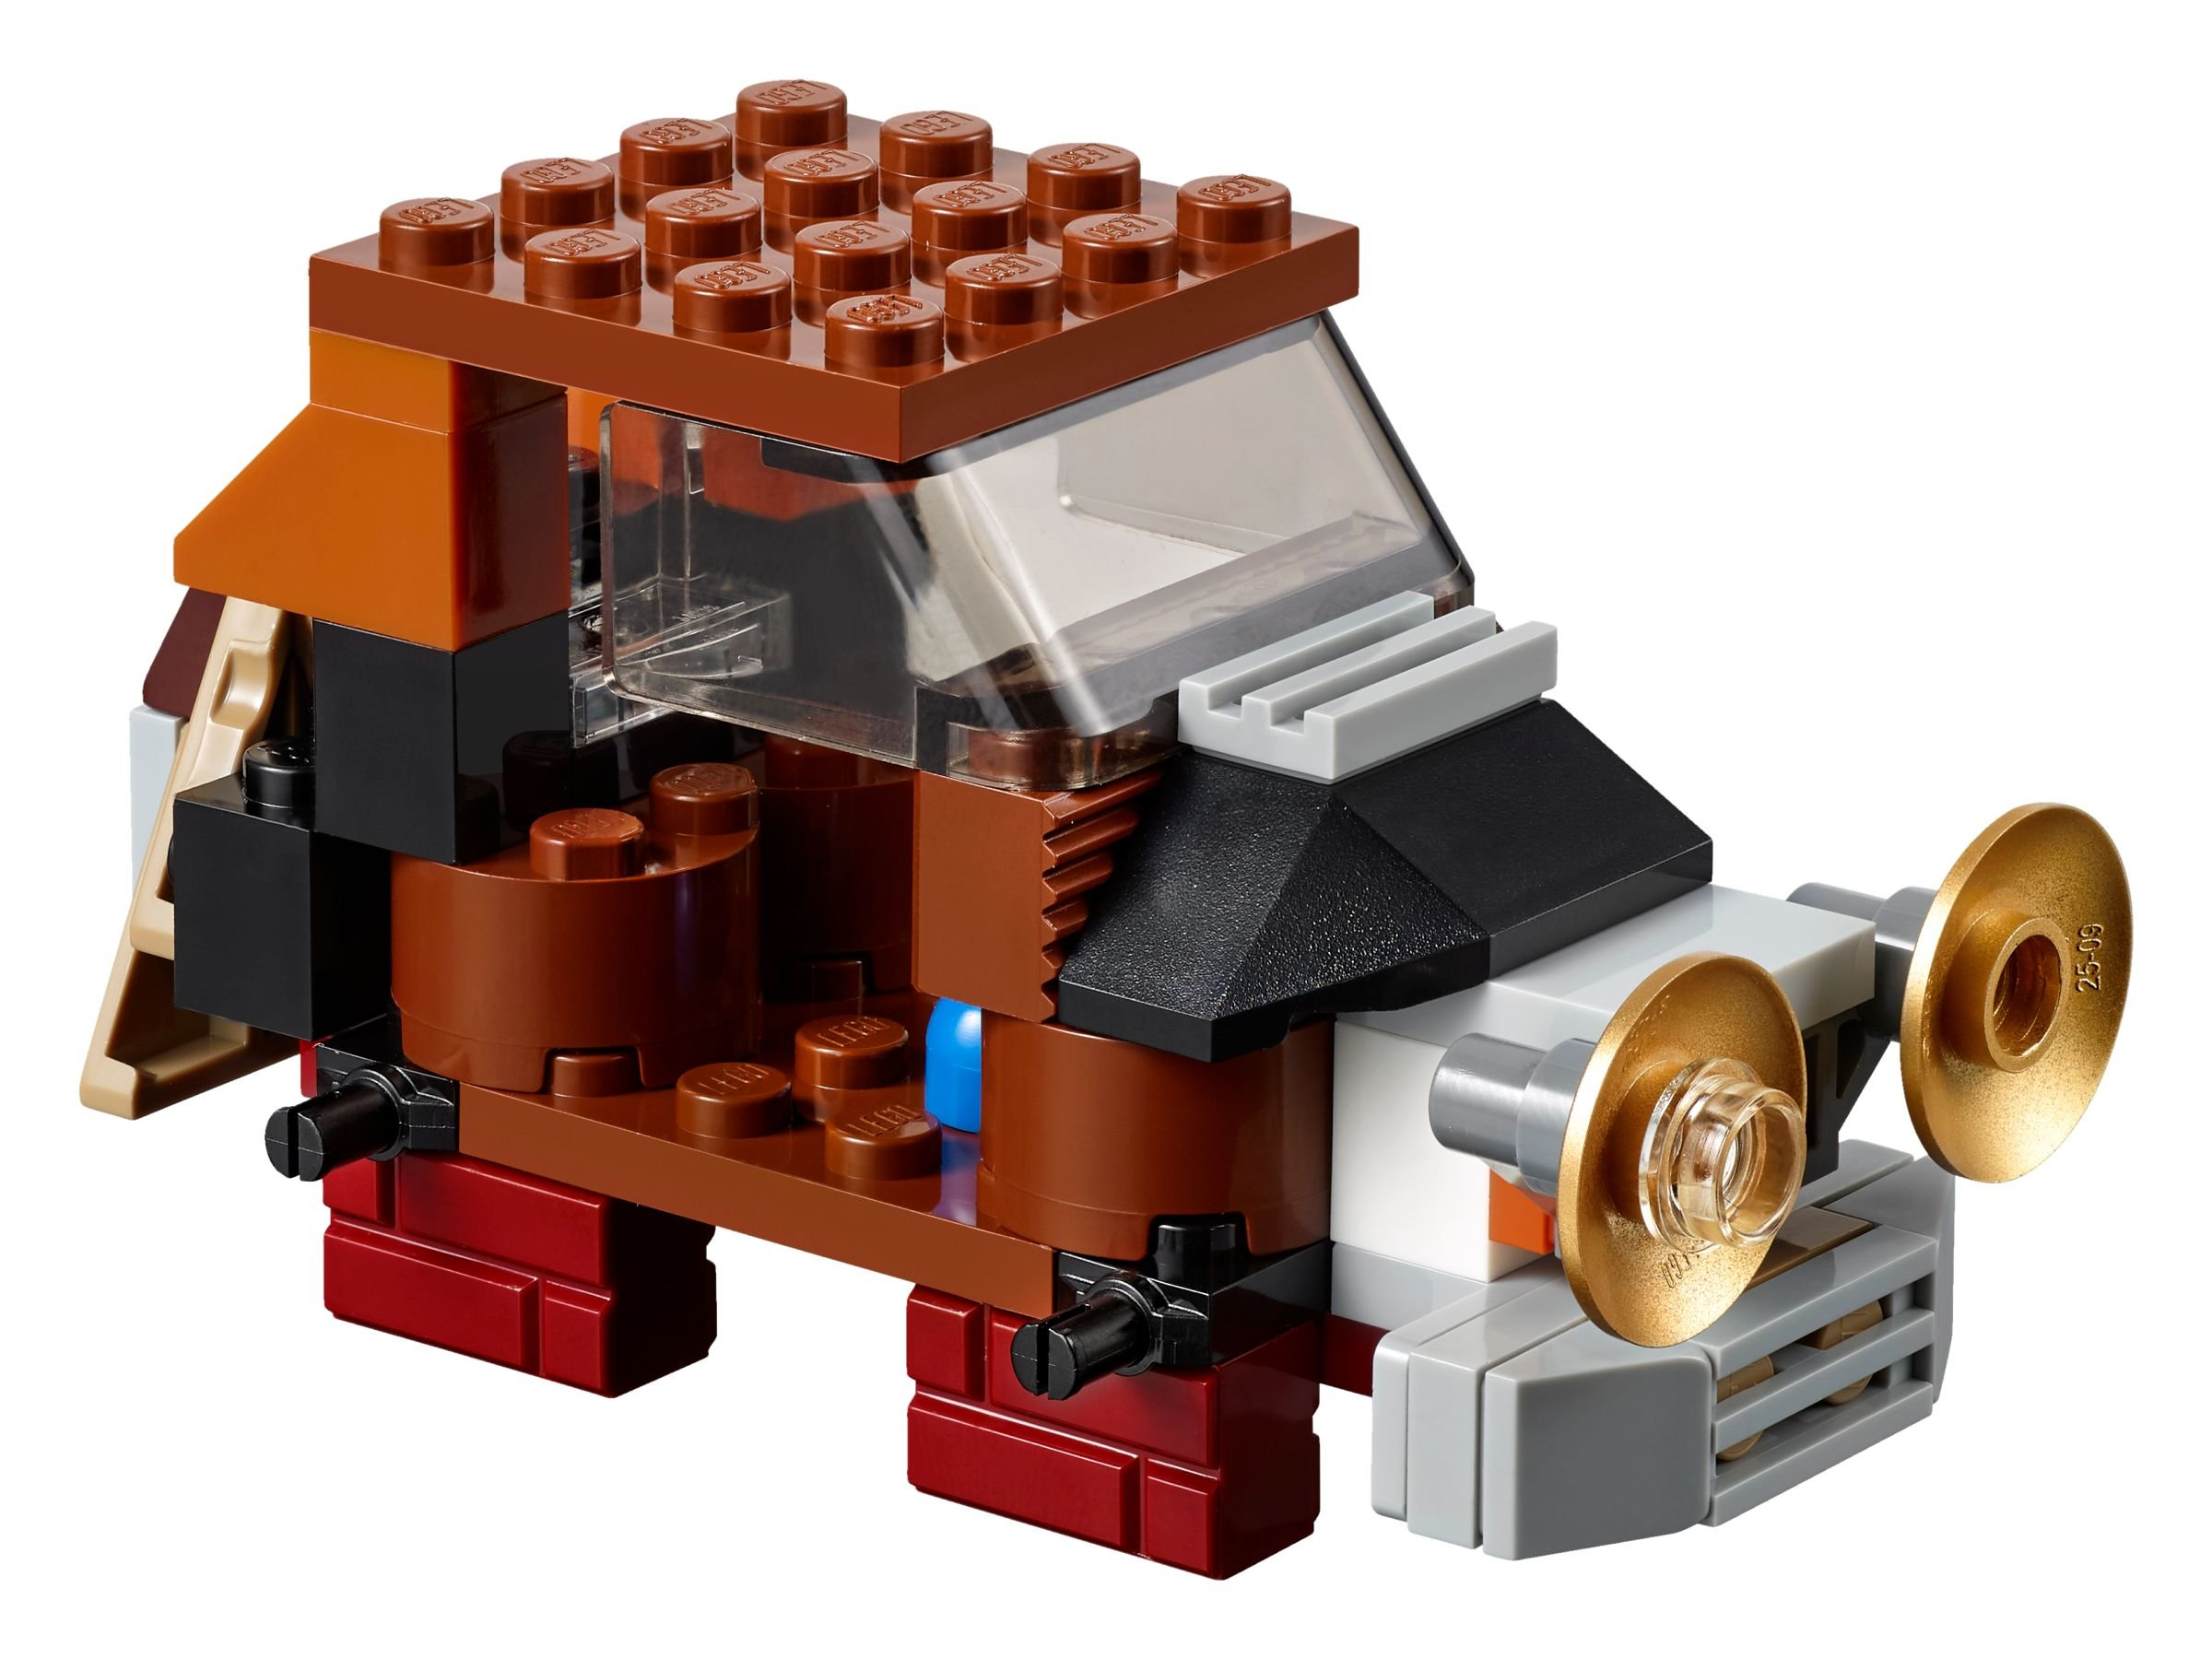 LEGO Building Bigger Thinking 10405 Mars-Mission LEGO_10405_alt10.jpg